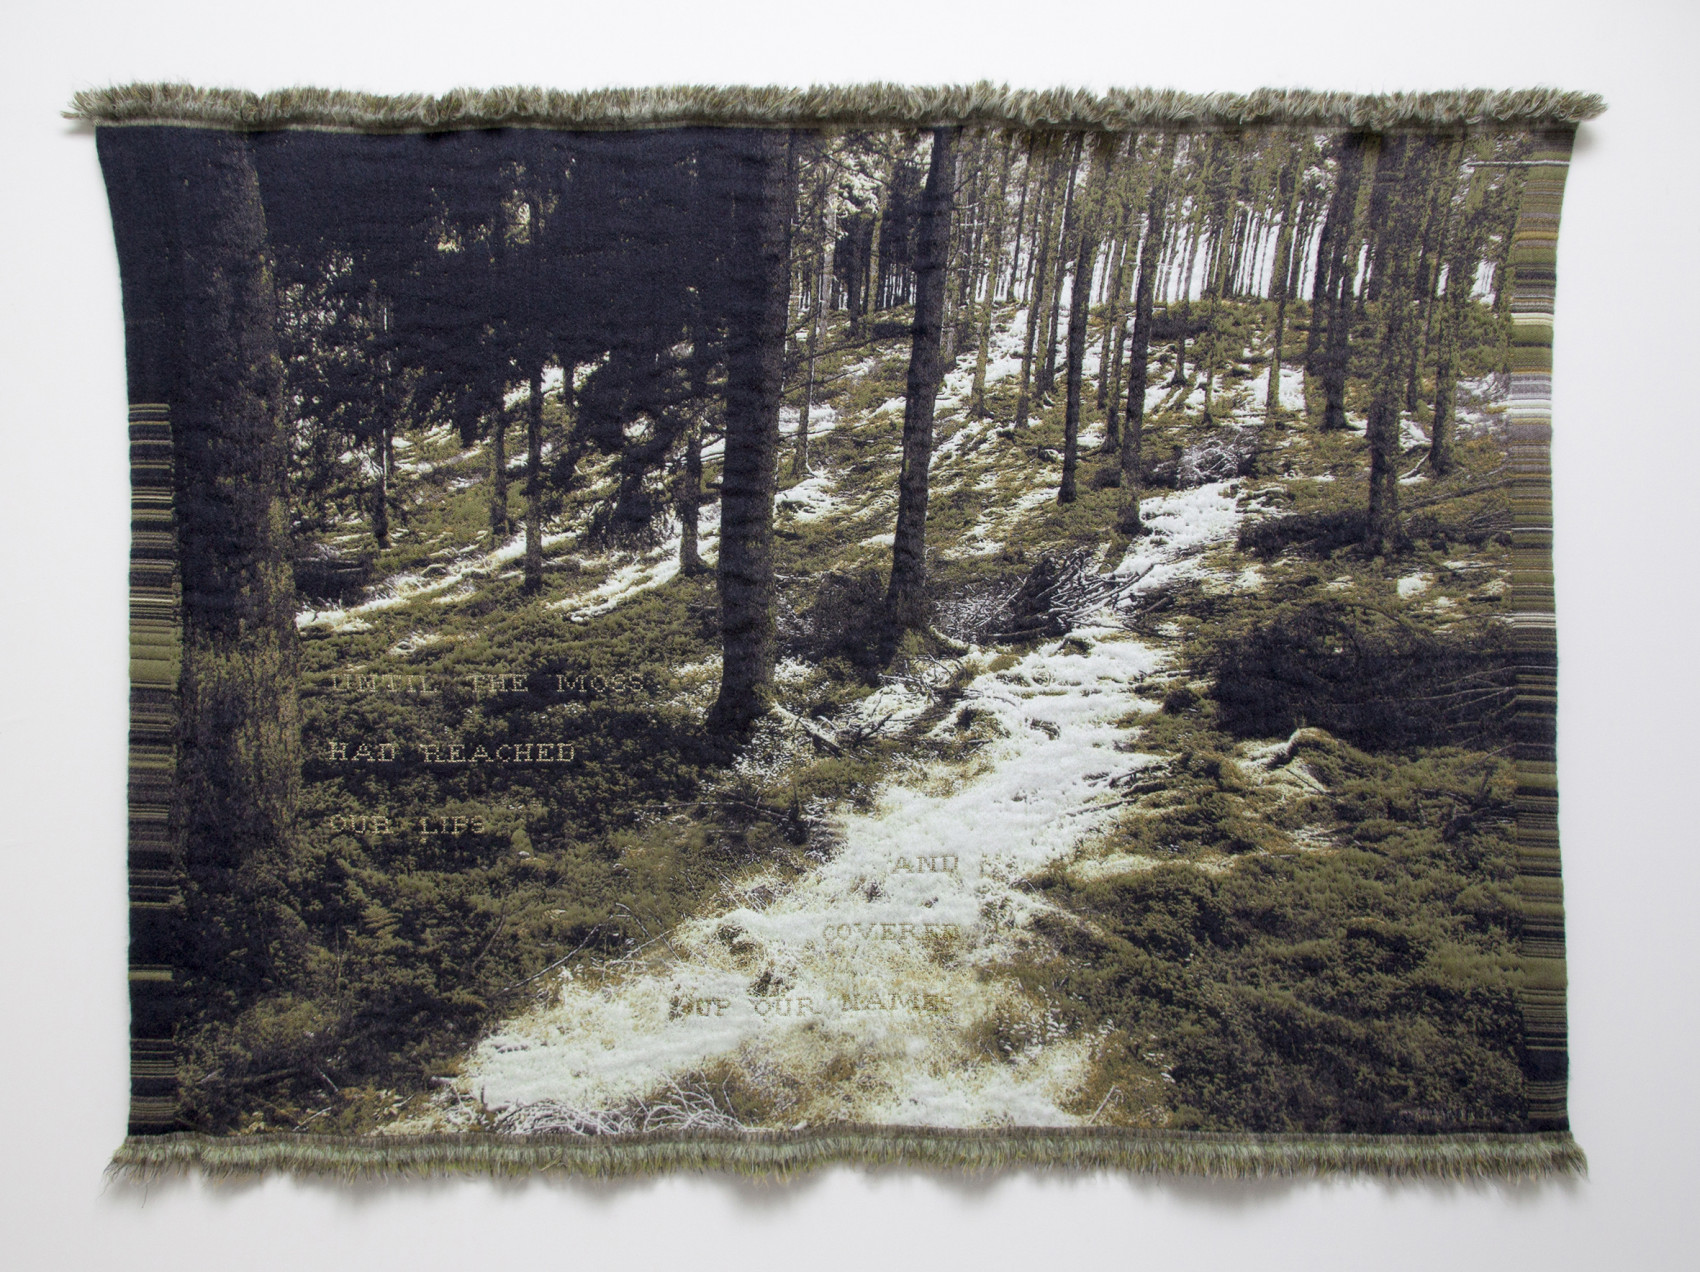 'Until the moss had reached our lips and covered up our names' (Emily Dickinson) - Jacquard woven - double weaves - mohair and cashwool - text embroidered by hand - 165 x 235 cm - 2015